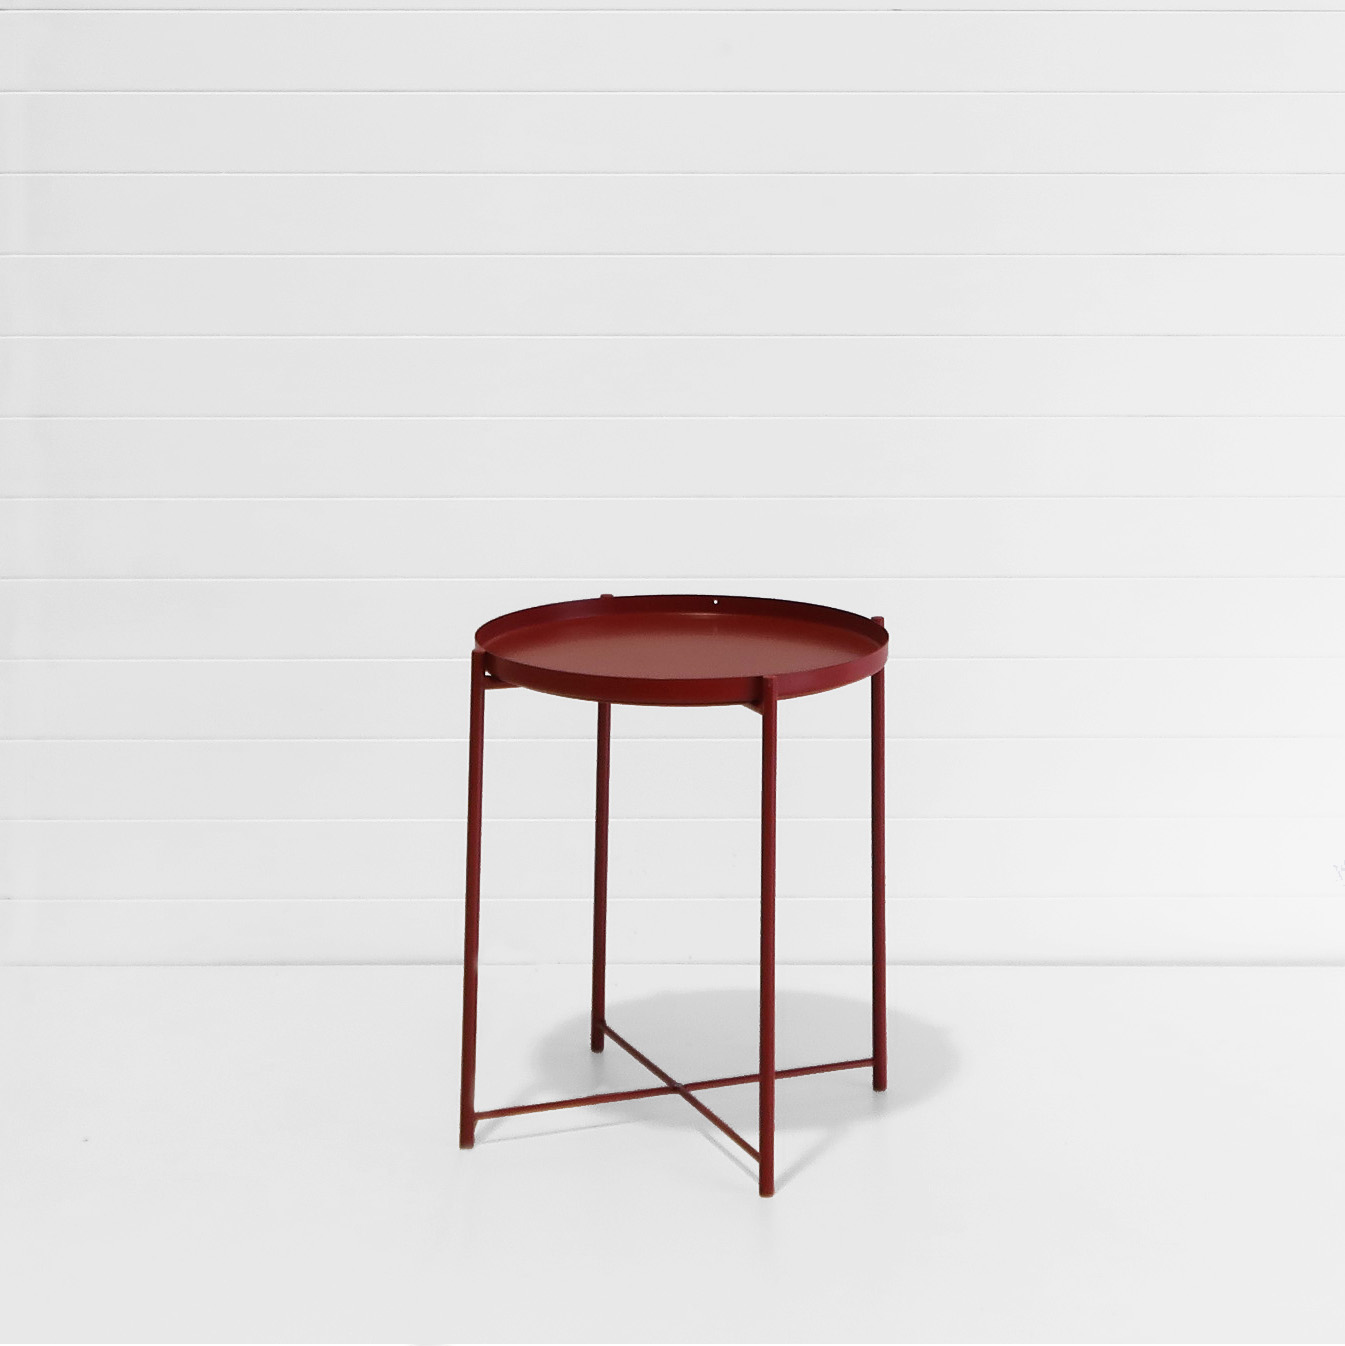 Red Tray Side Table.JPG